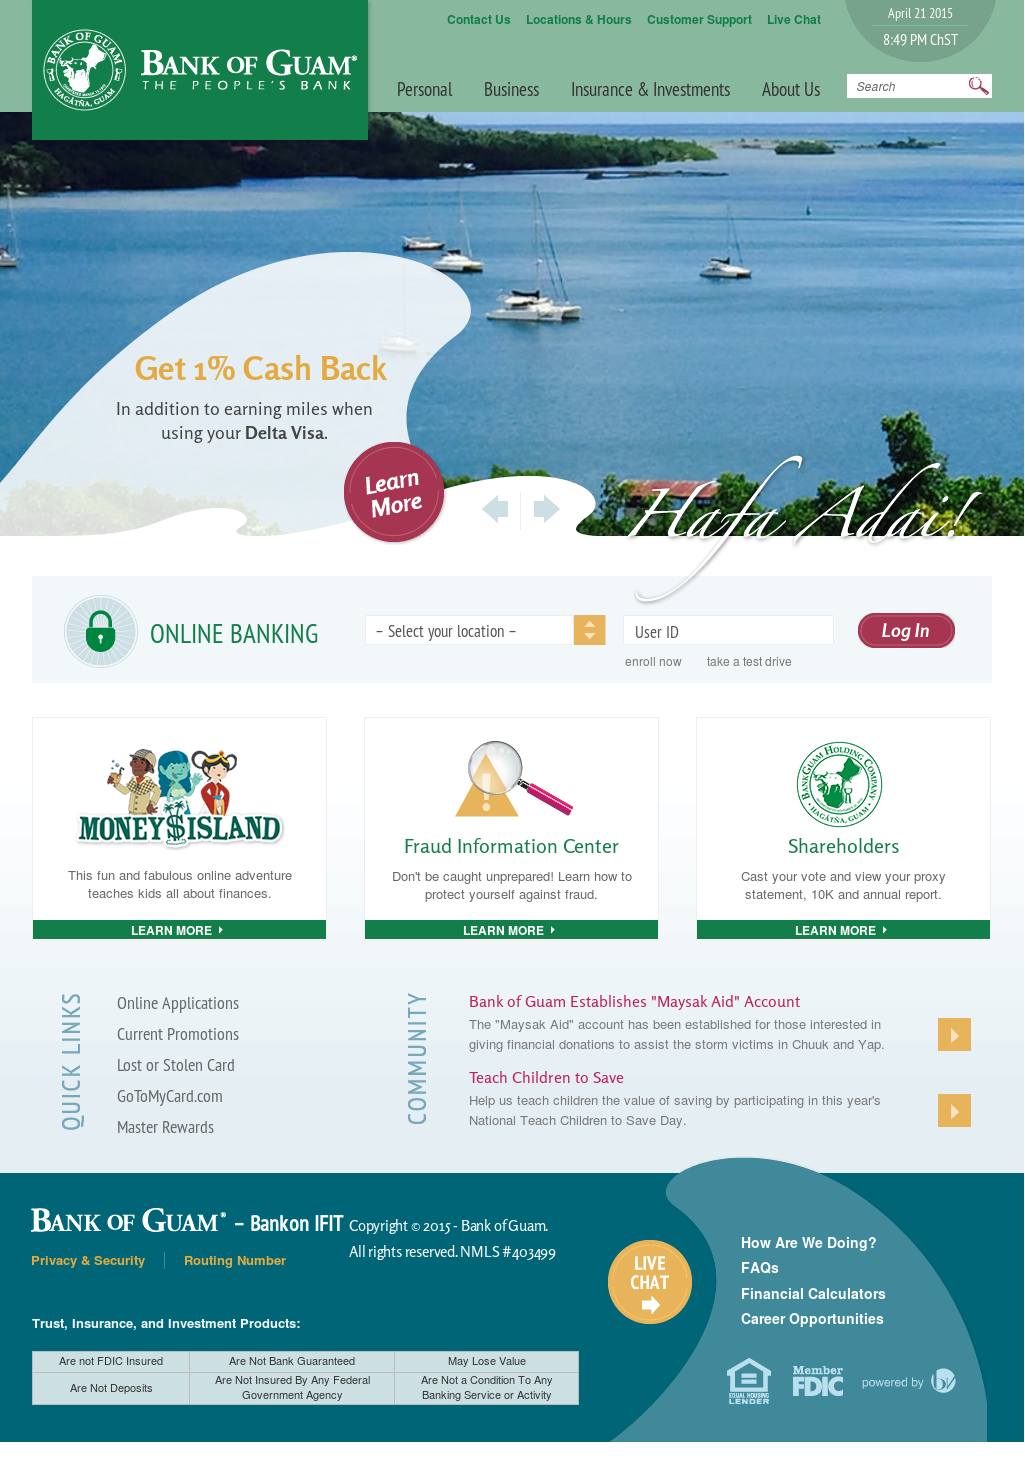 Bank of Guam Competitors, Revenue and Employees - Owler Company Profile